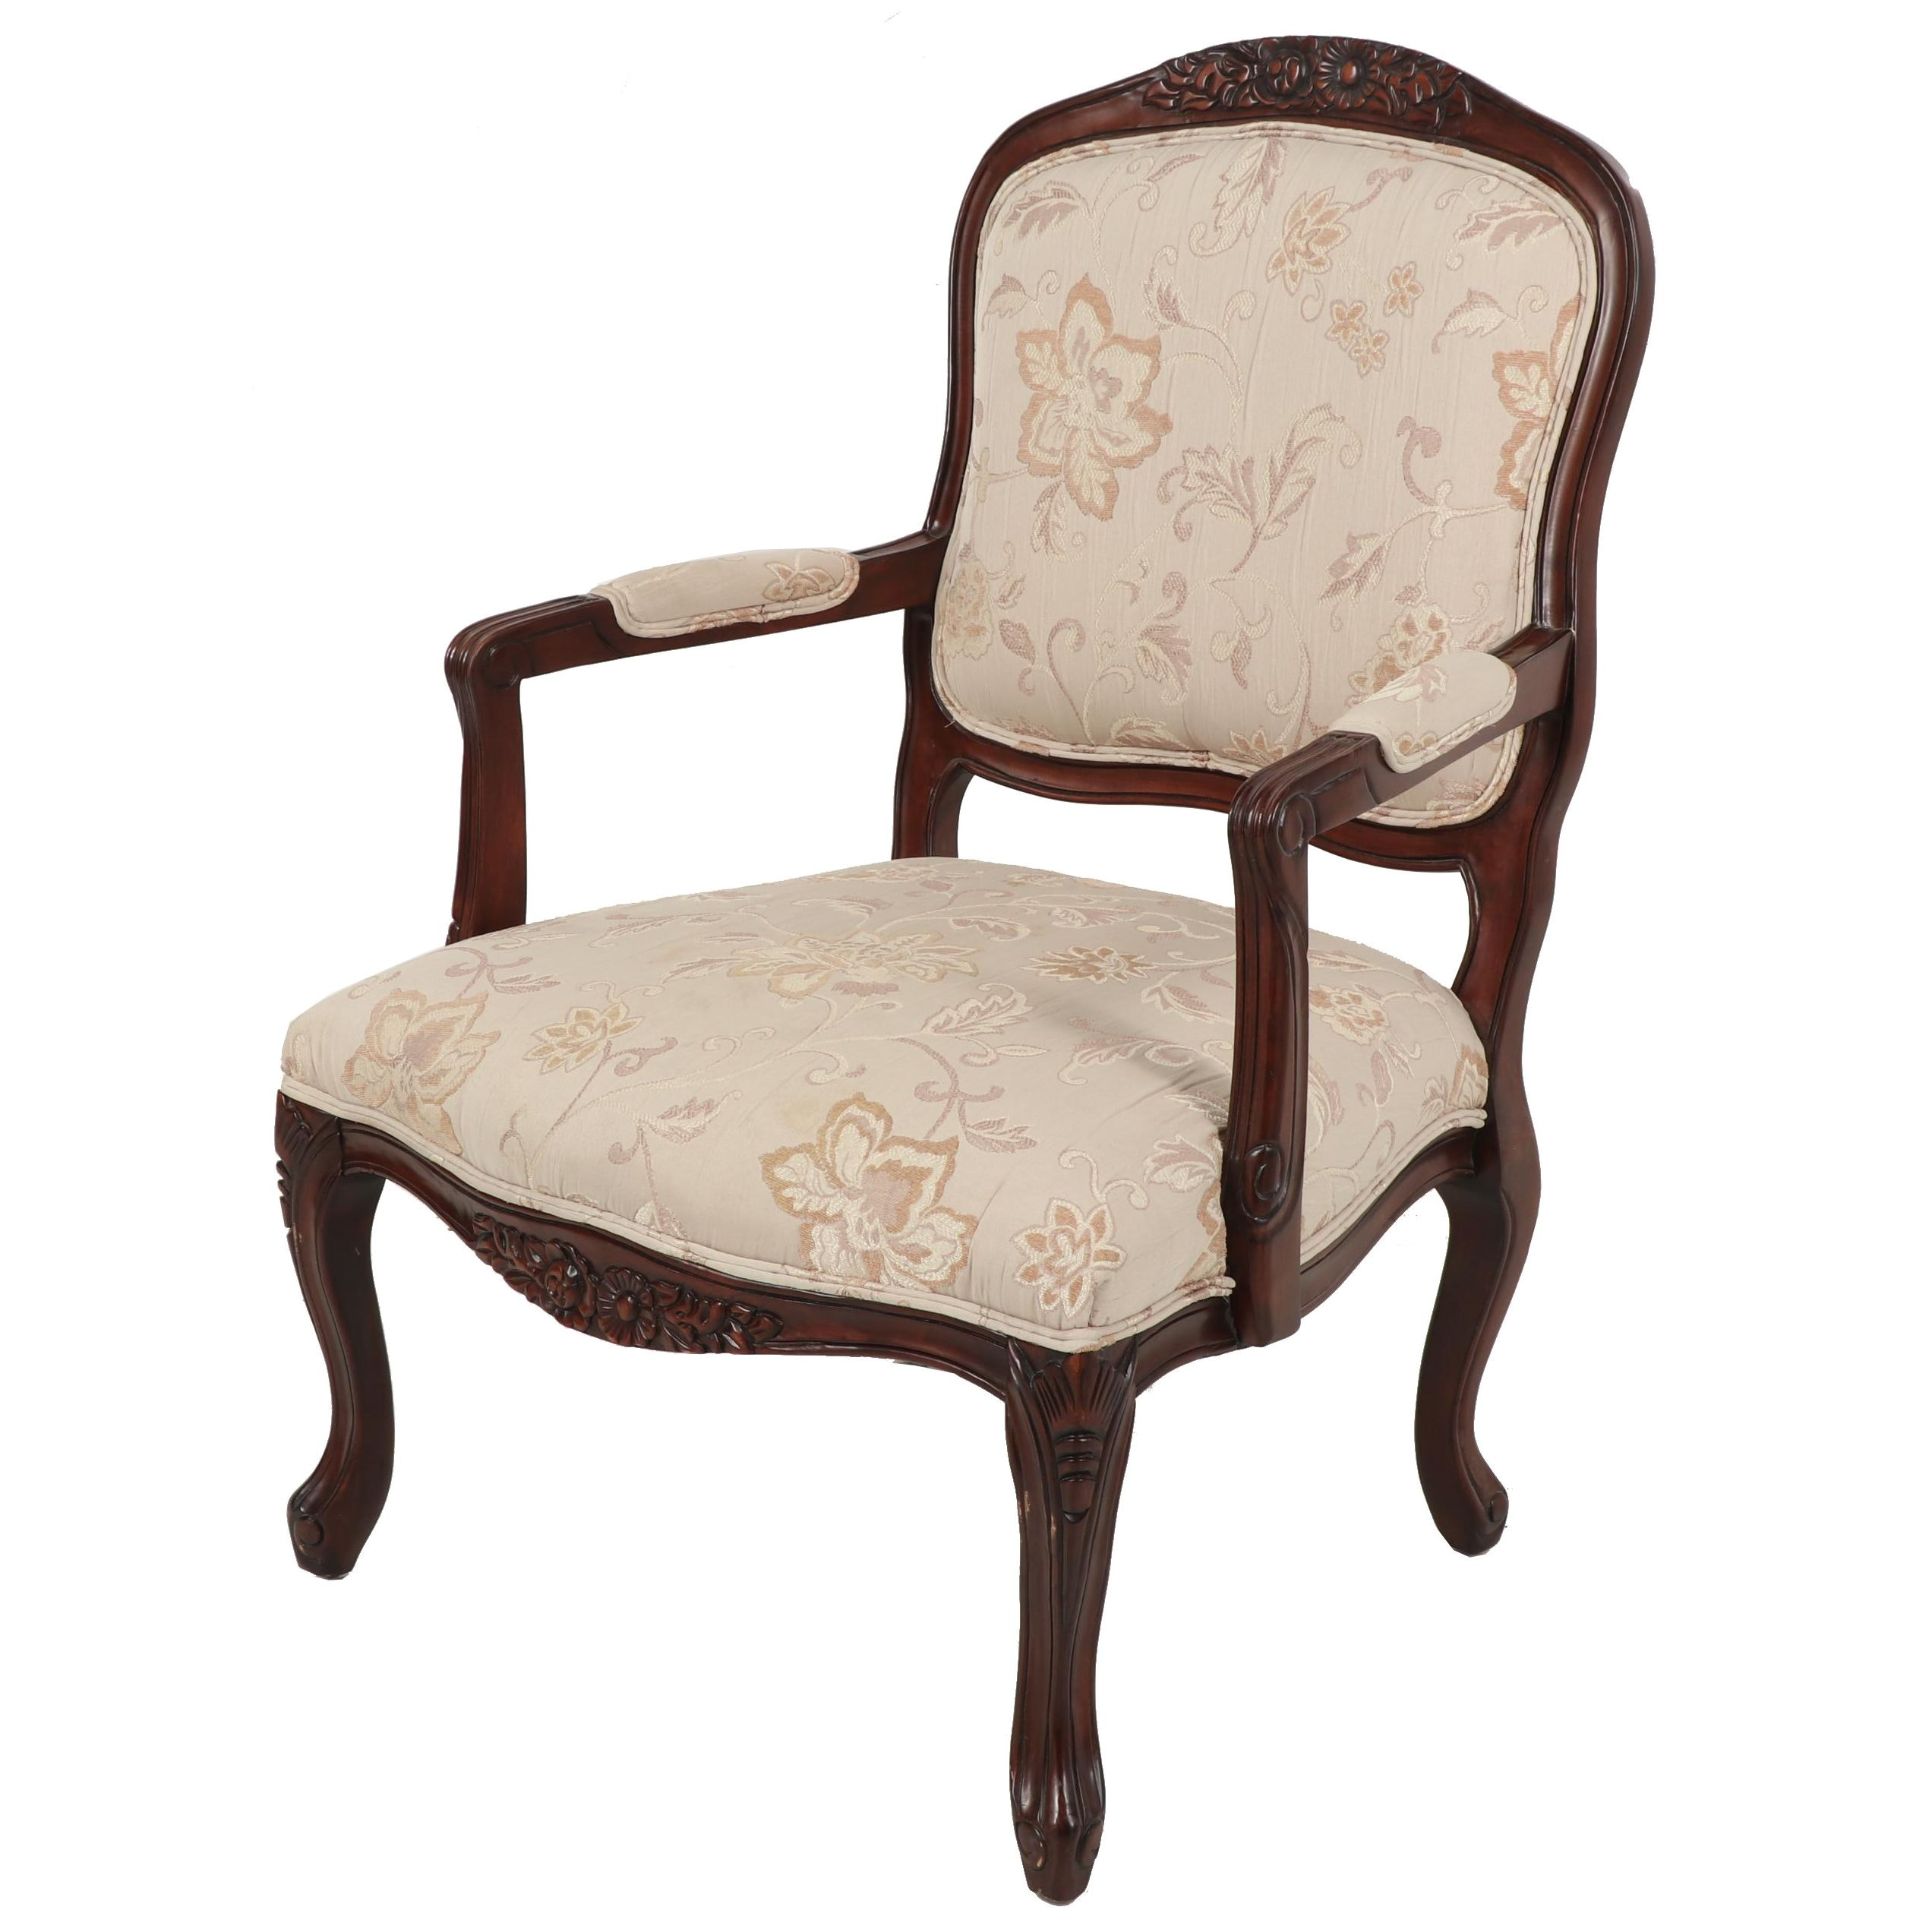 Dongguan South Asia Furniture Company Armchair